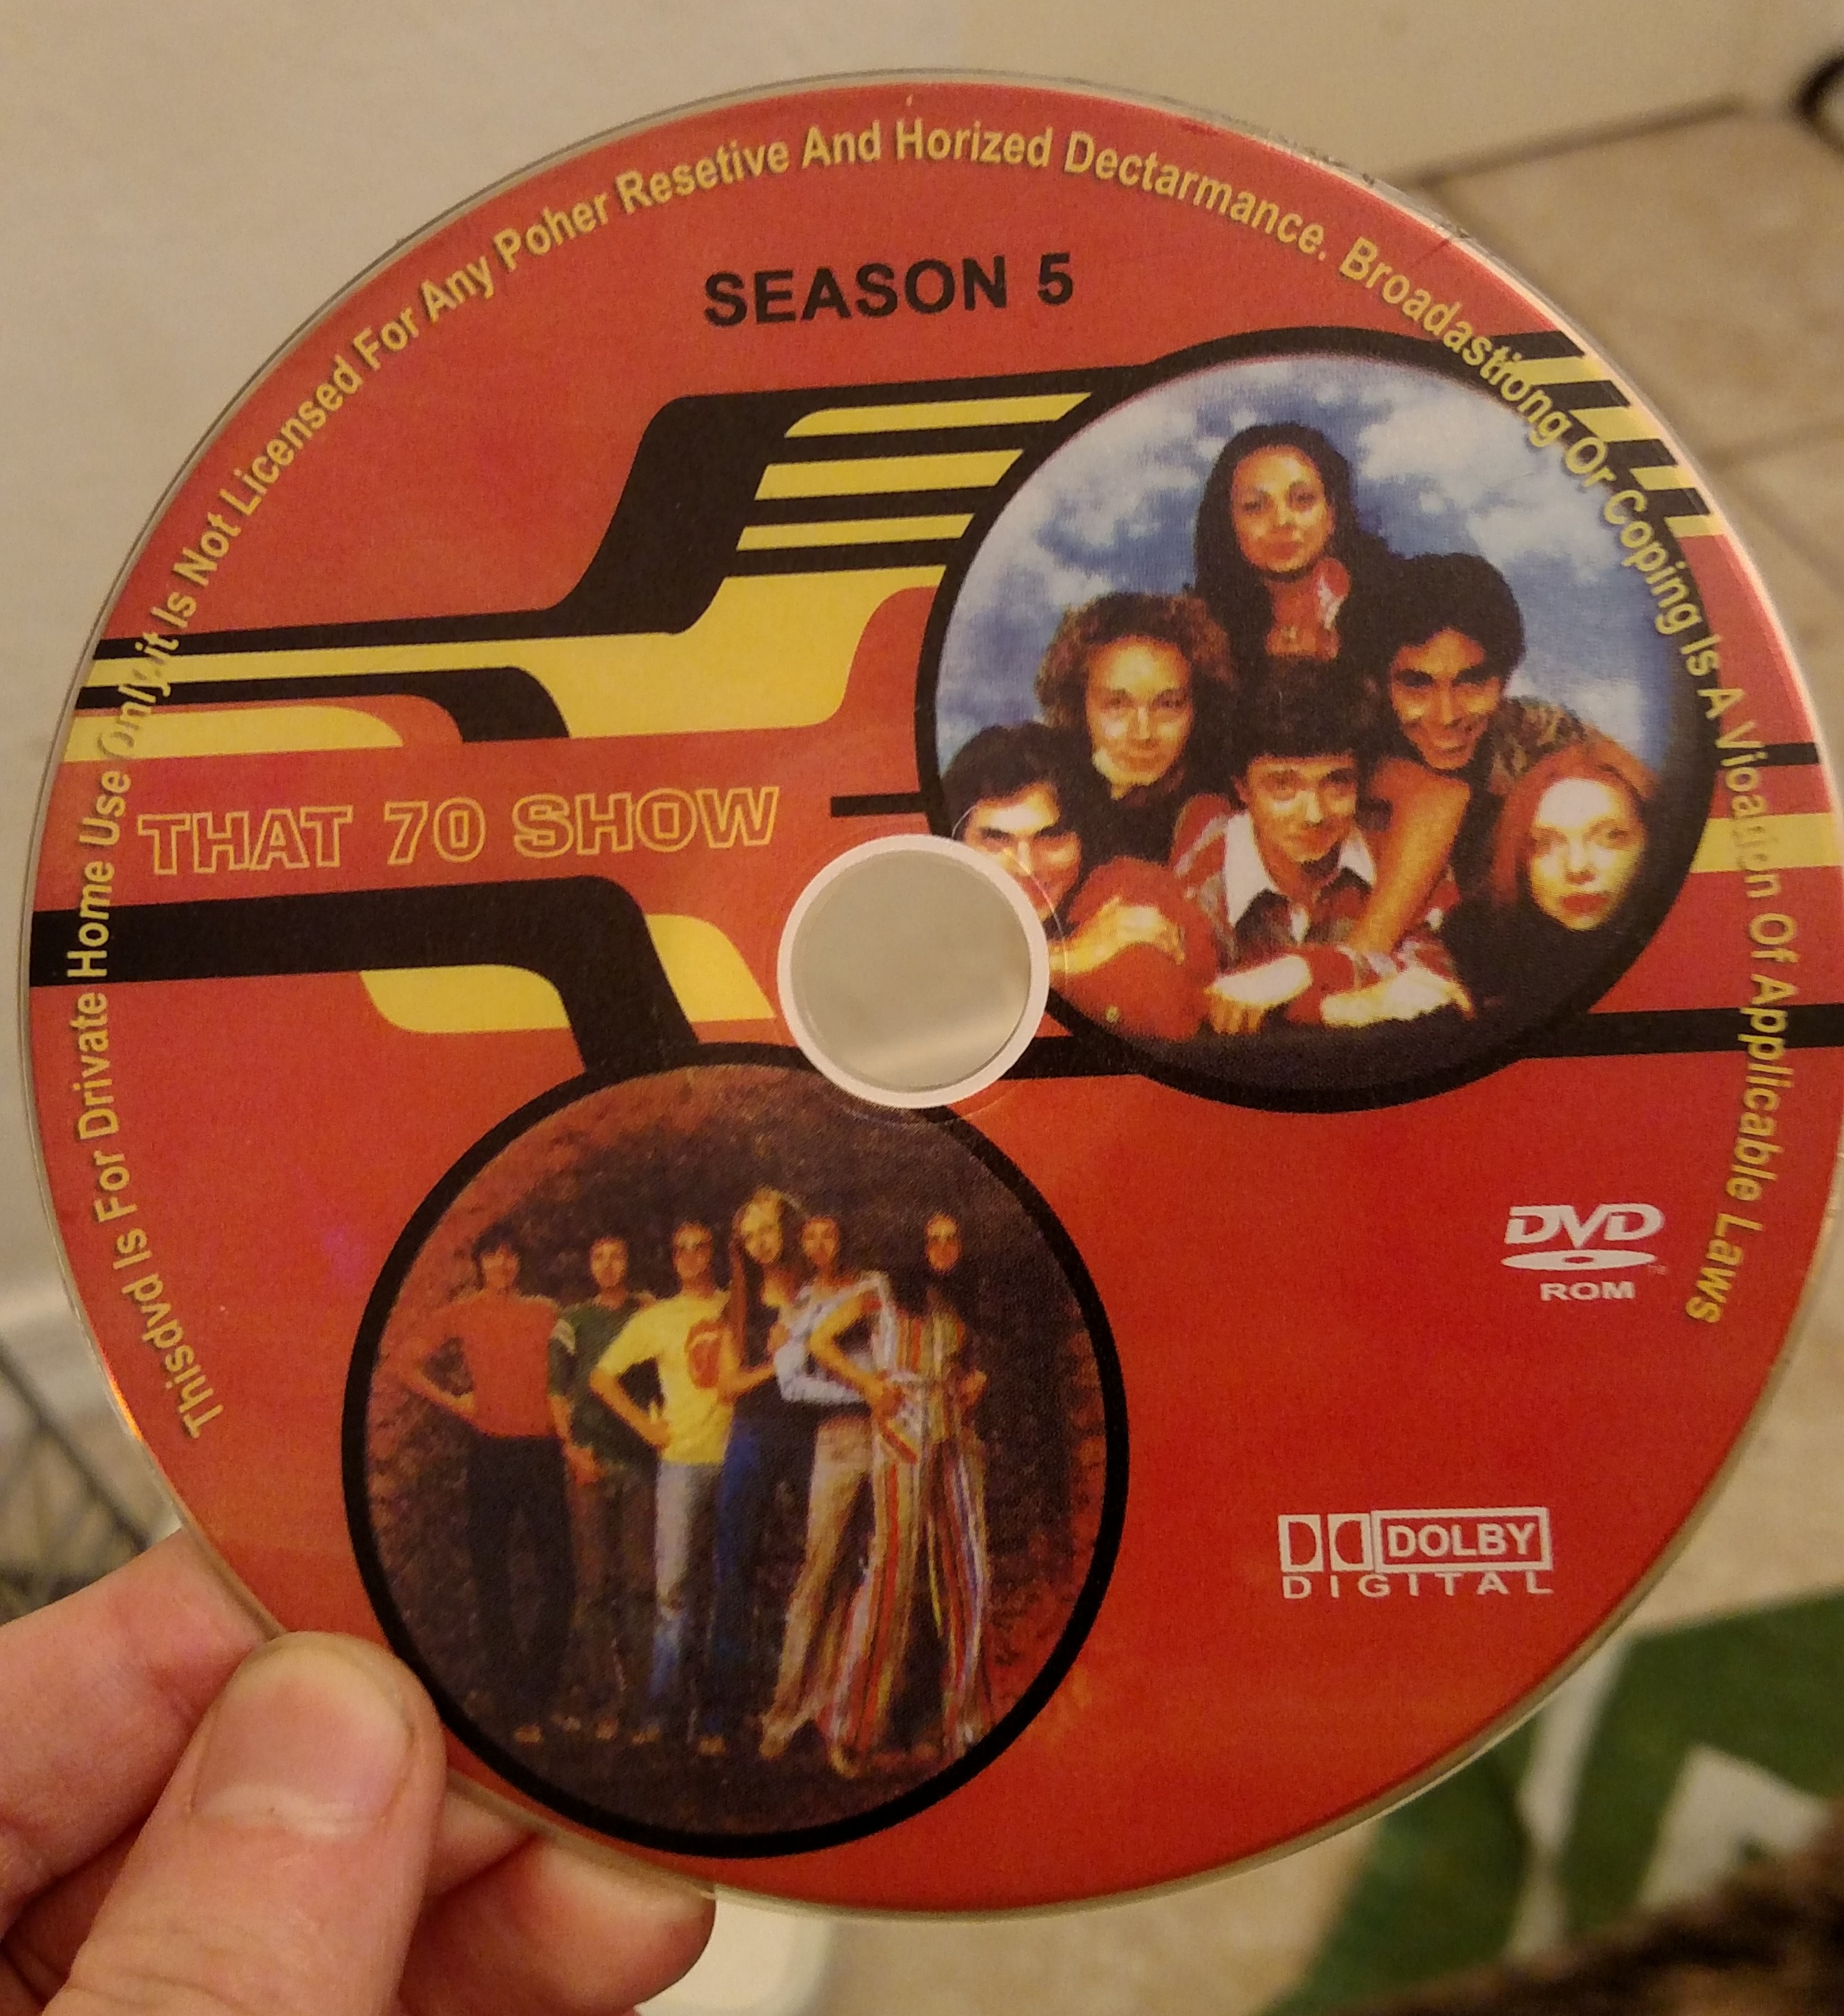 That 70's Show Bootleg Disc.jpg